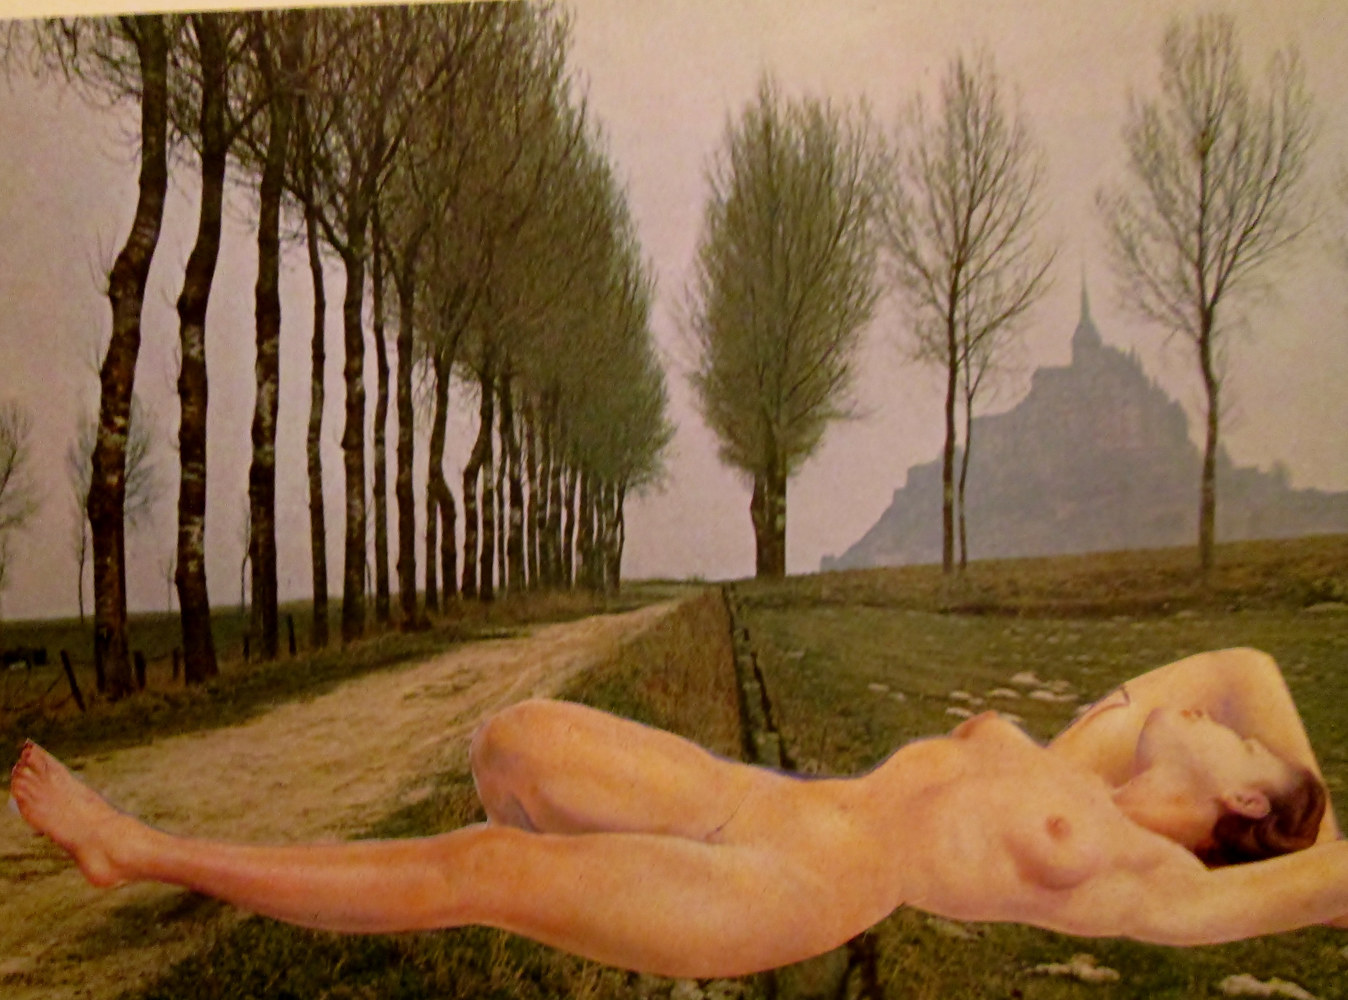 Nude on the Road to Nowhere  by Jo Ann Tunnell Muench